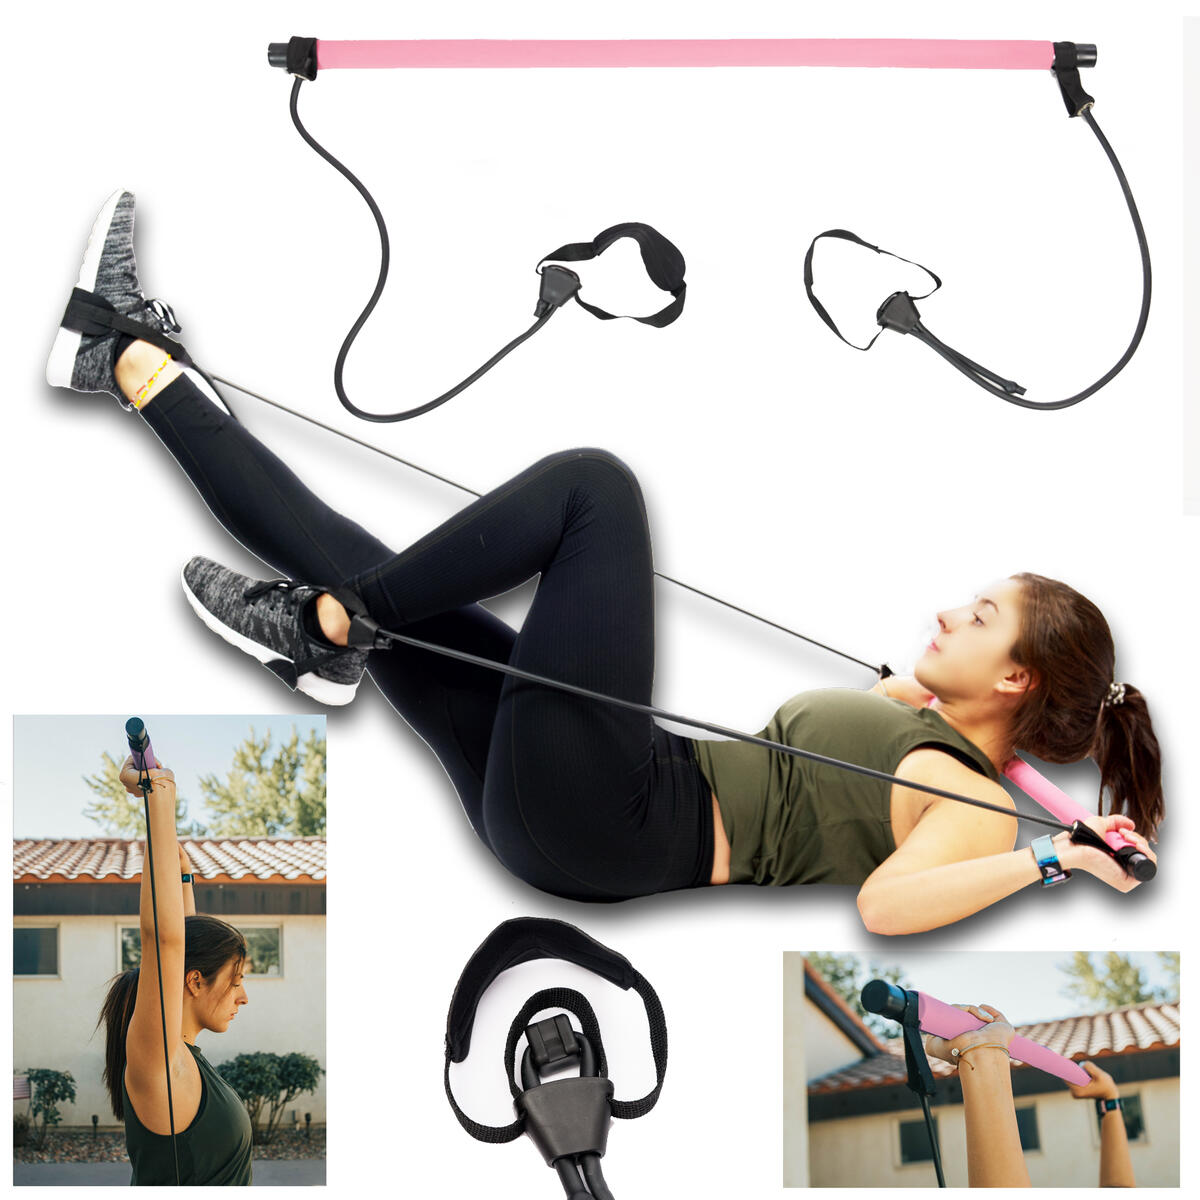 Pilates Bar Kit With Adjustable Resistance Bands Portable Home Gym Equipment x3 Full Body Workout Exercise Band For All Levels Yoga Strength Training on The Go for Women Men Premium Pink and Black…